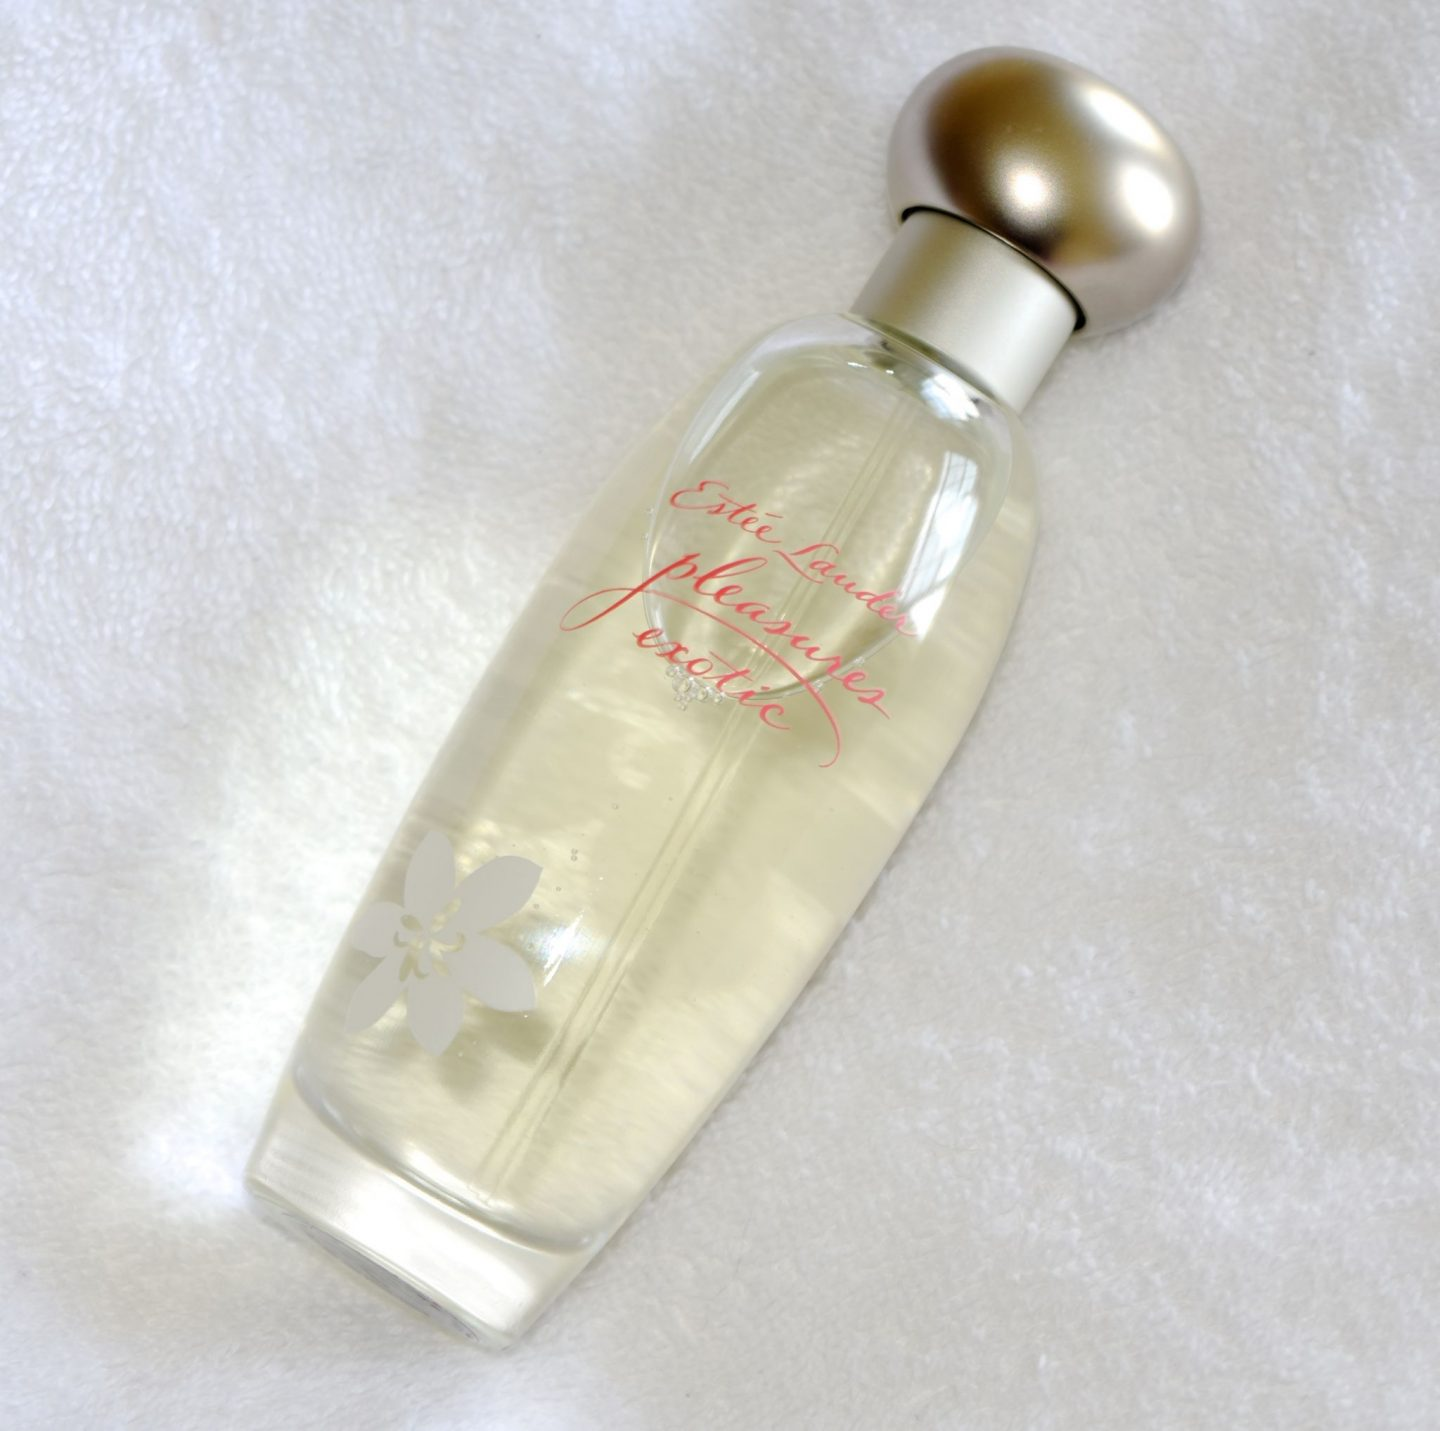 Estee Lauder Pleasures Exotic 1